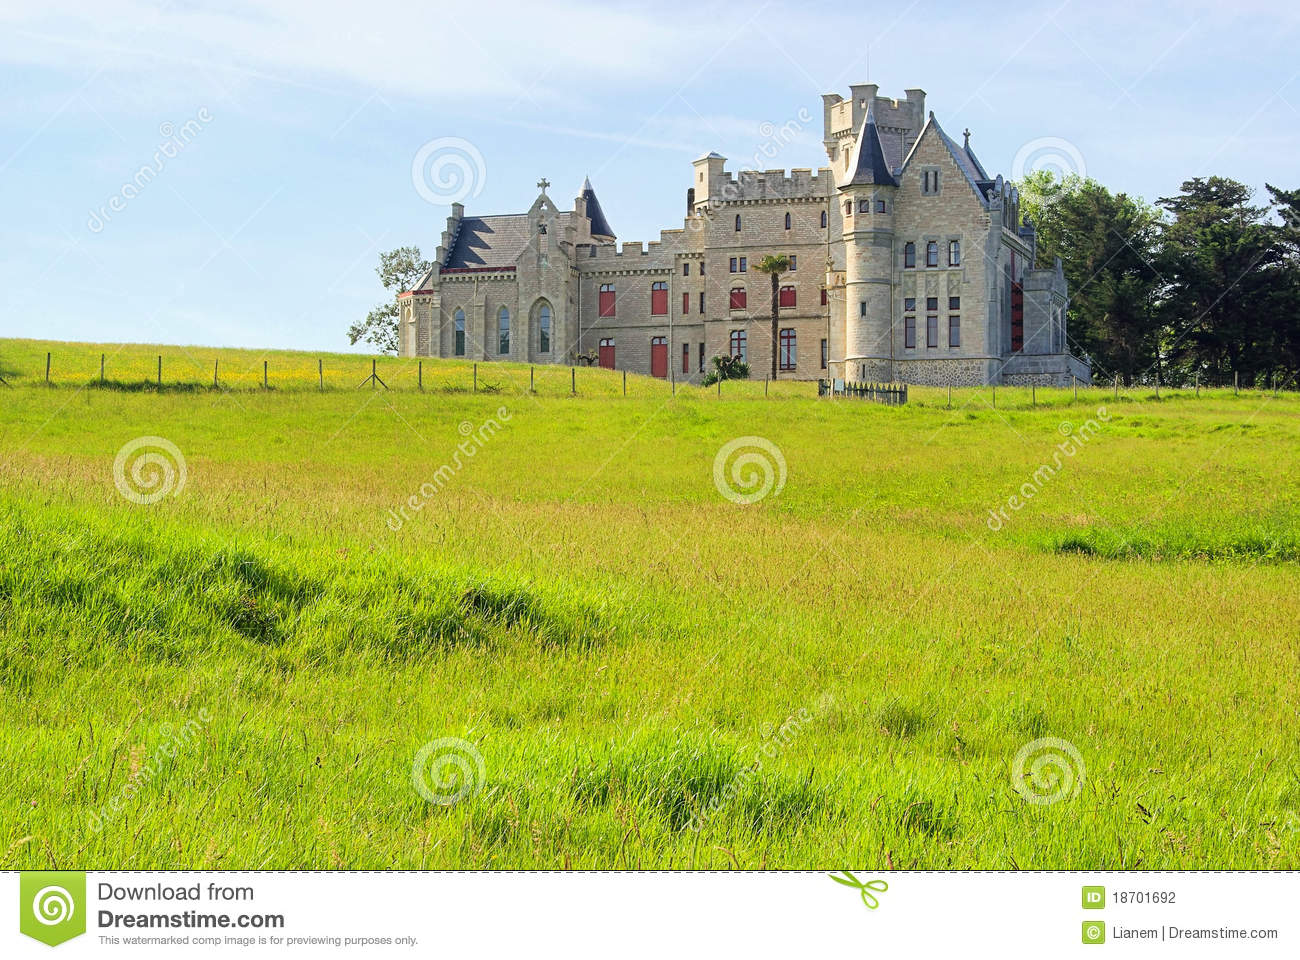 Hendaye chateau d abbadie stock photography image 18701692 for Hendaye france